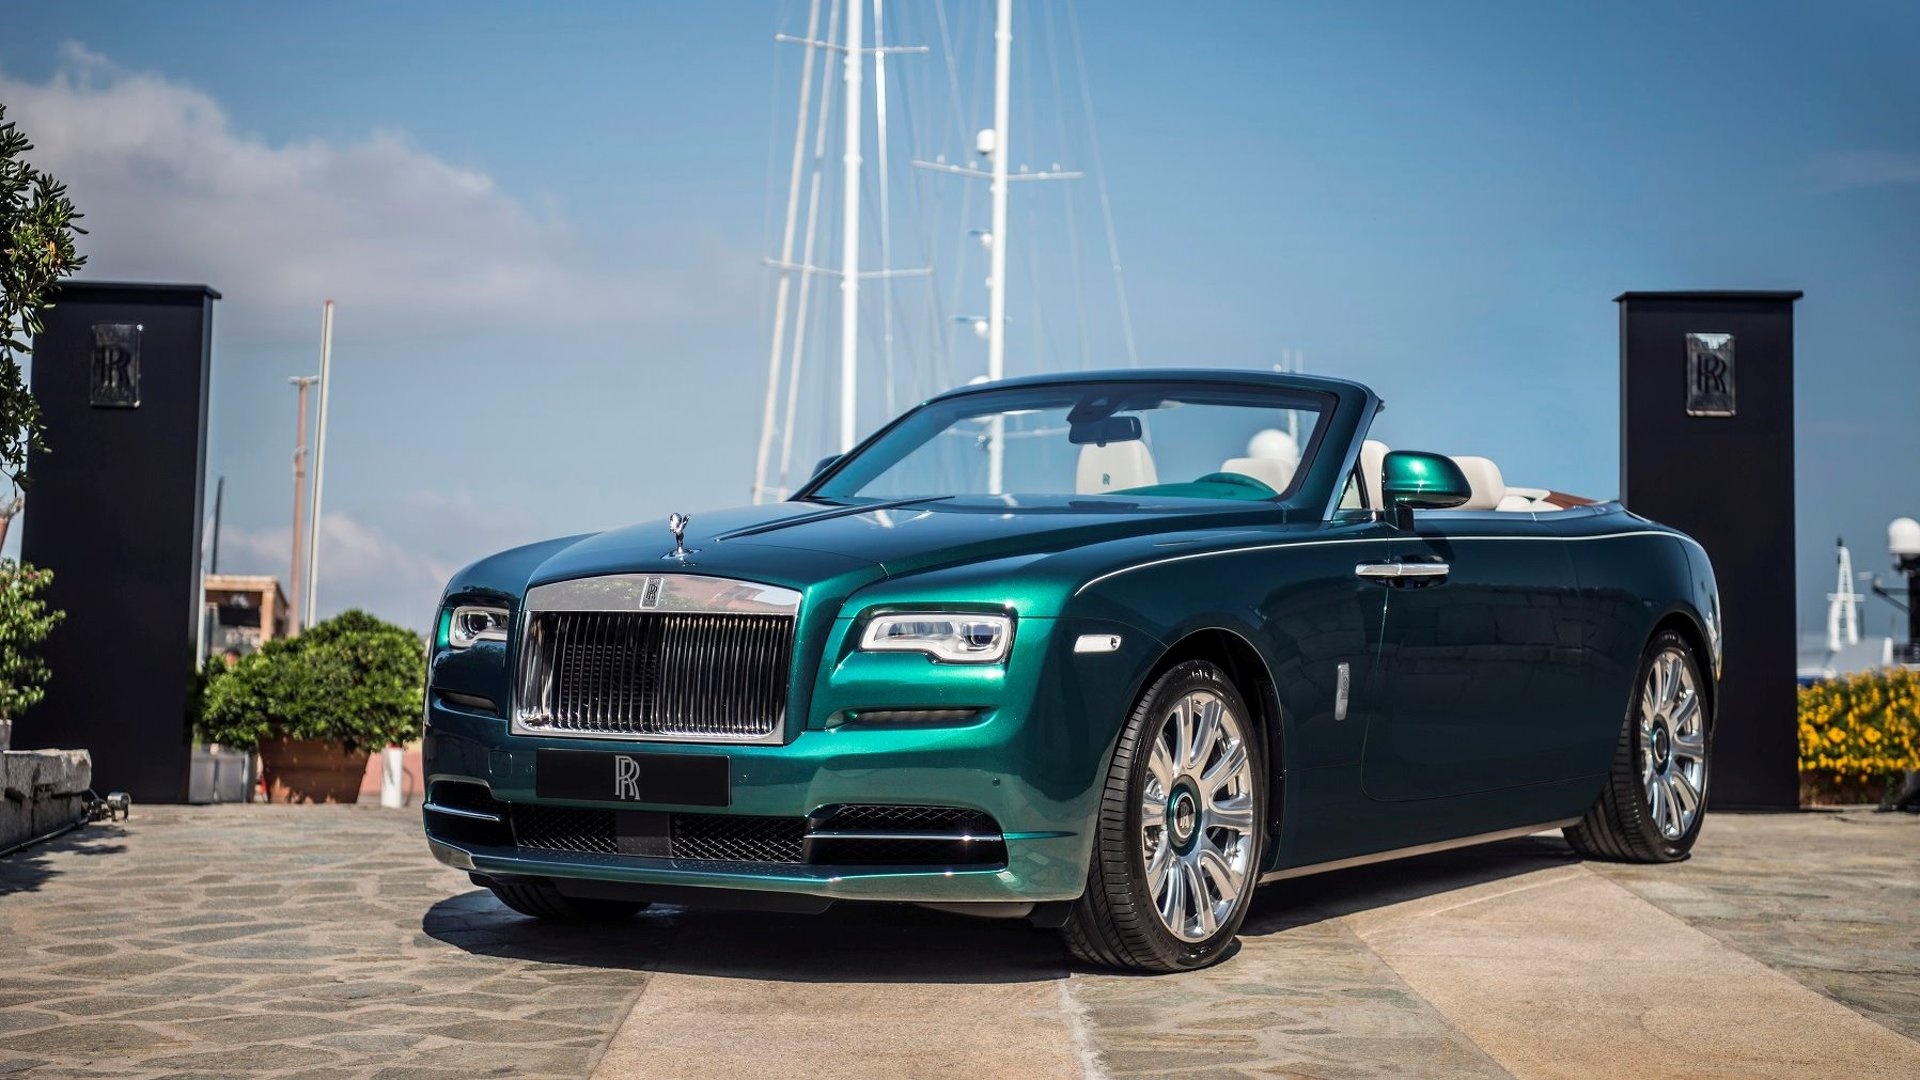 Rolls-Royce presents bespoke, jewel-encrusted Dawn and Wraith